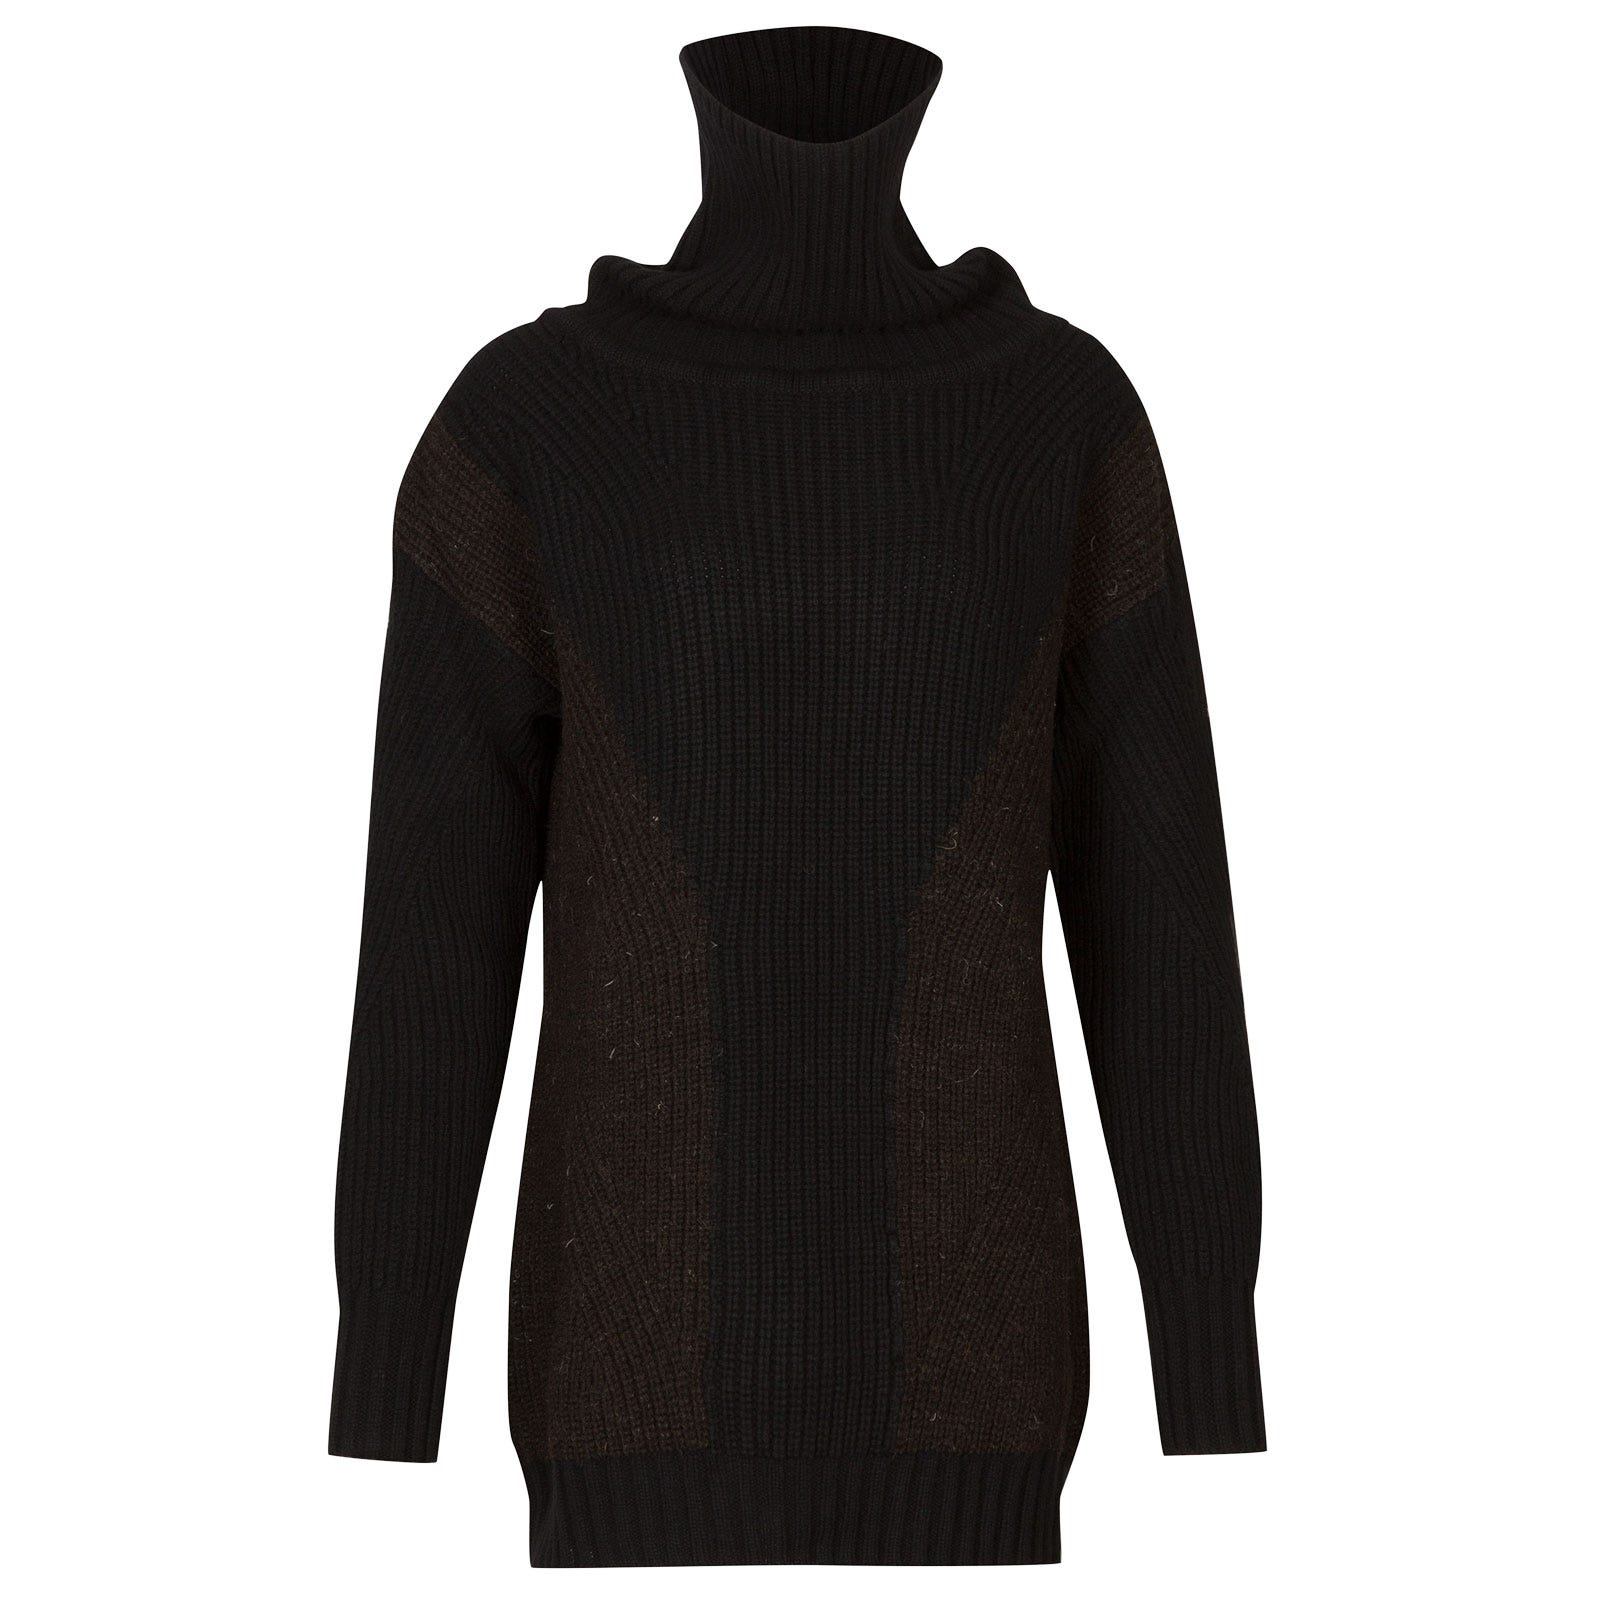 John Smedley wyedale British Wool & Cashmere Wool Sweater in Black-M